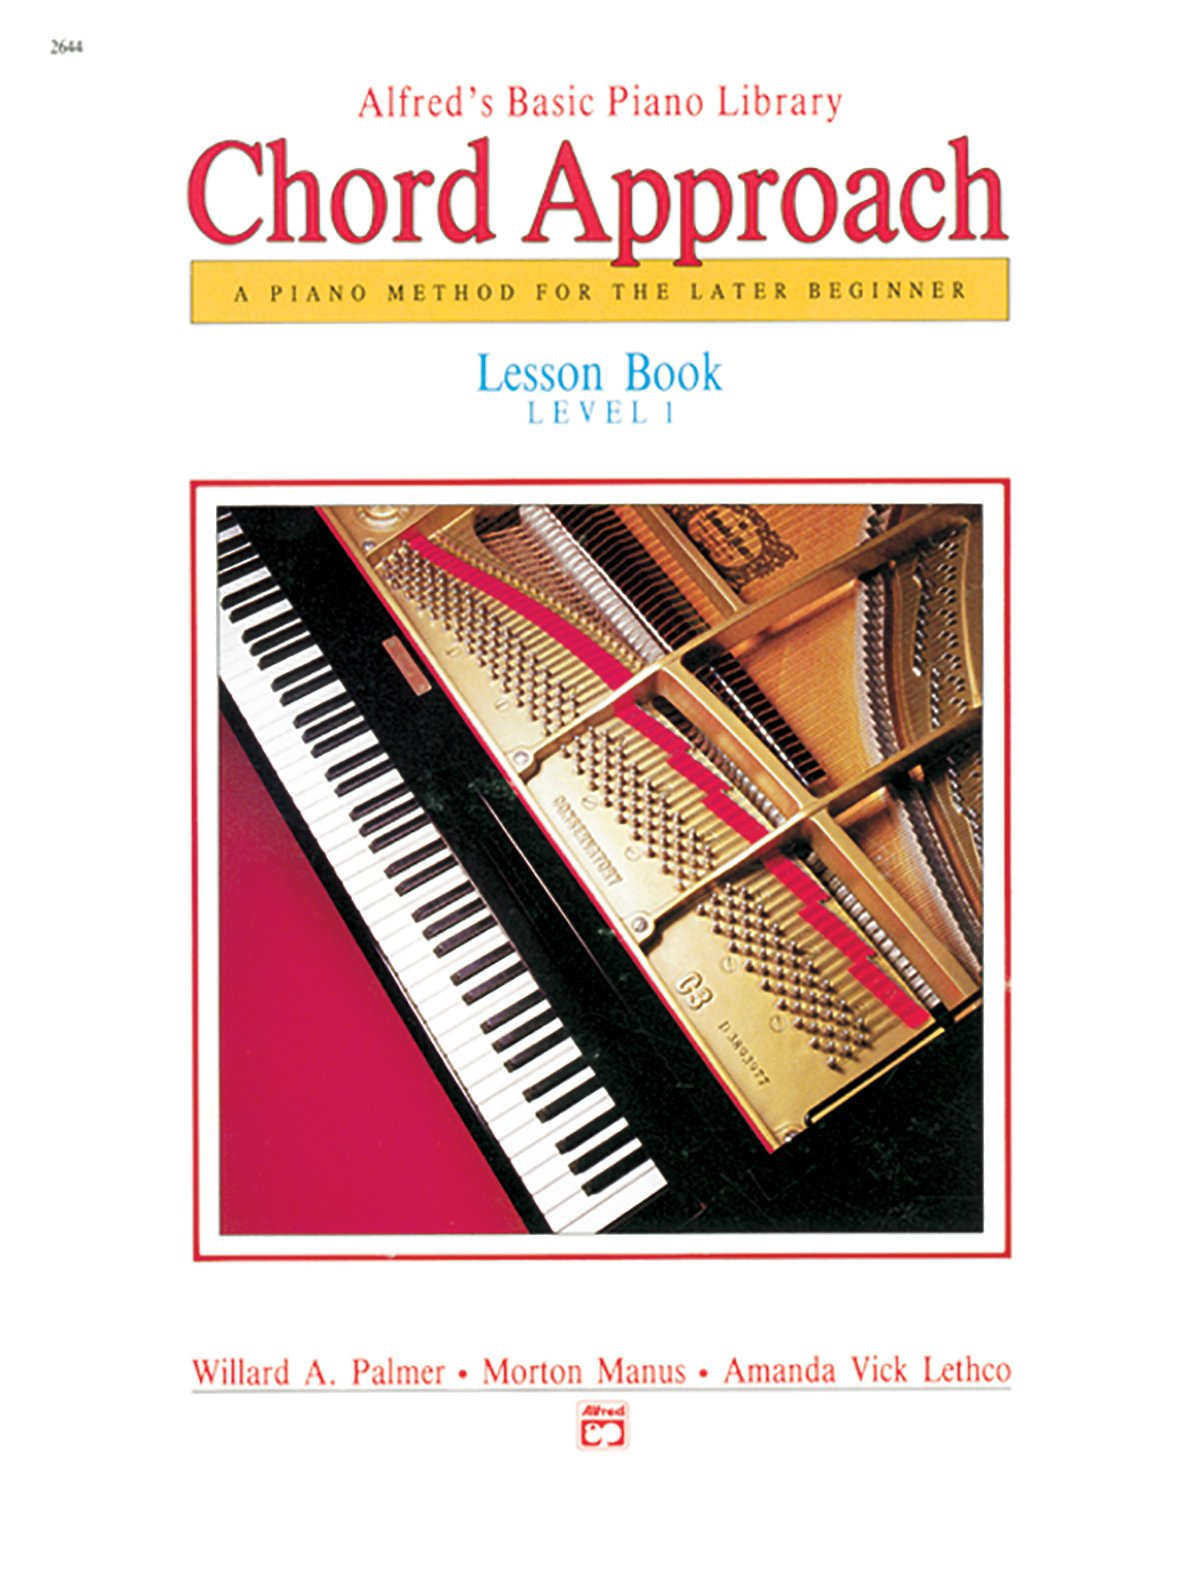 Alfreds basic piano chord approach lesson book bk 1 a piano alfreds basic piano chord approach lesson book bk 1 a piano method for the later beginner alfreds basic piano library willard a palmer morton manus hexwebz Images